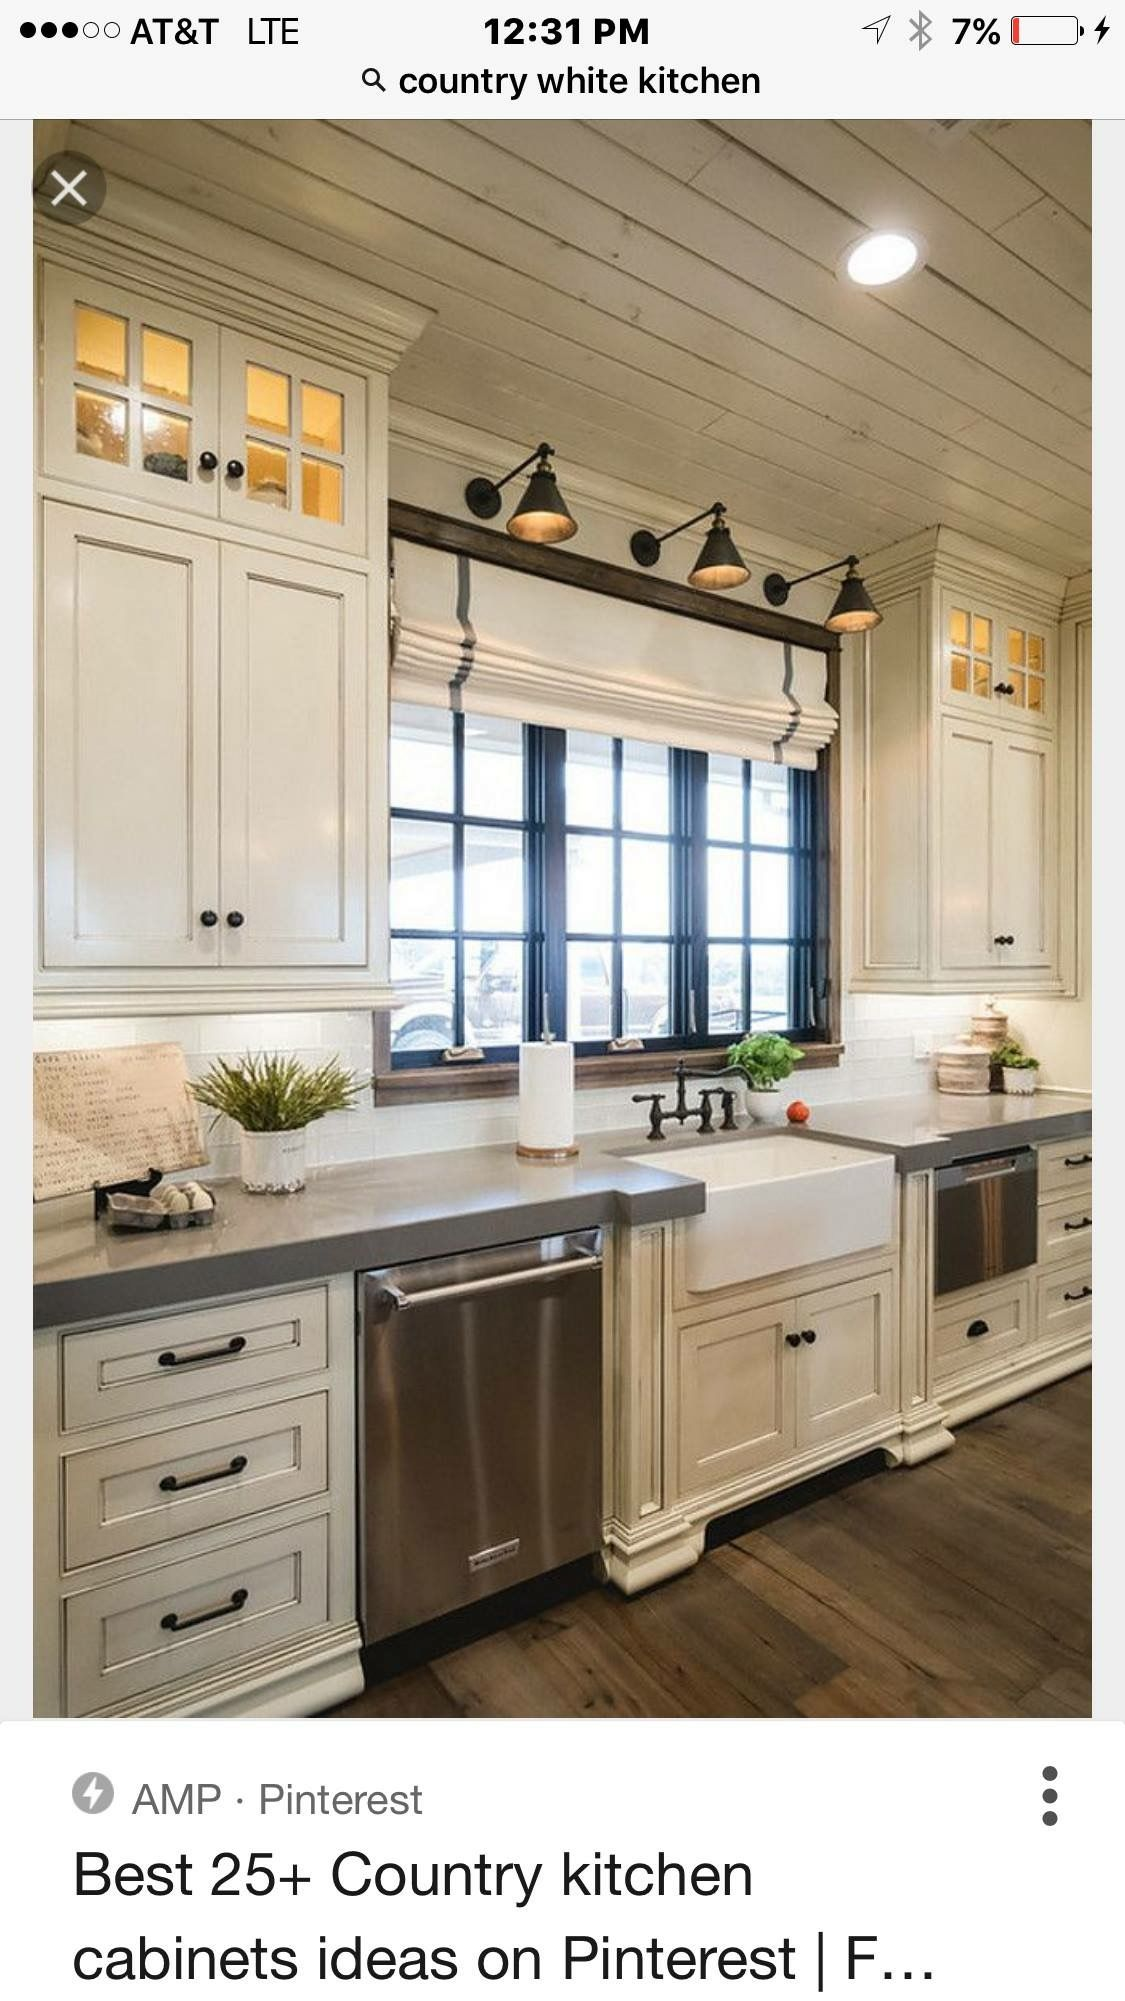 Over the sink kitchen window treatments  window treatment and style of light over window  kitchen remodel